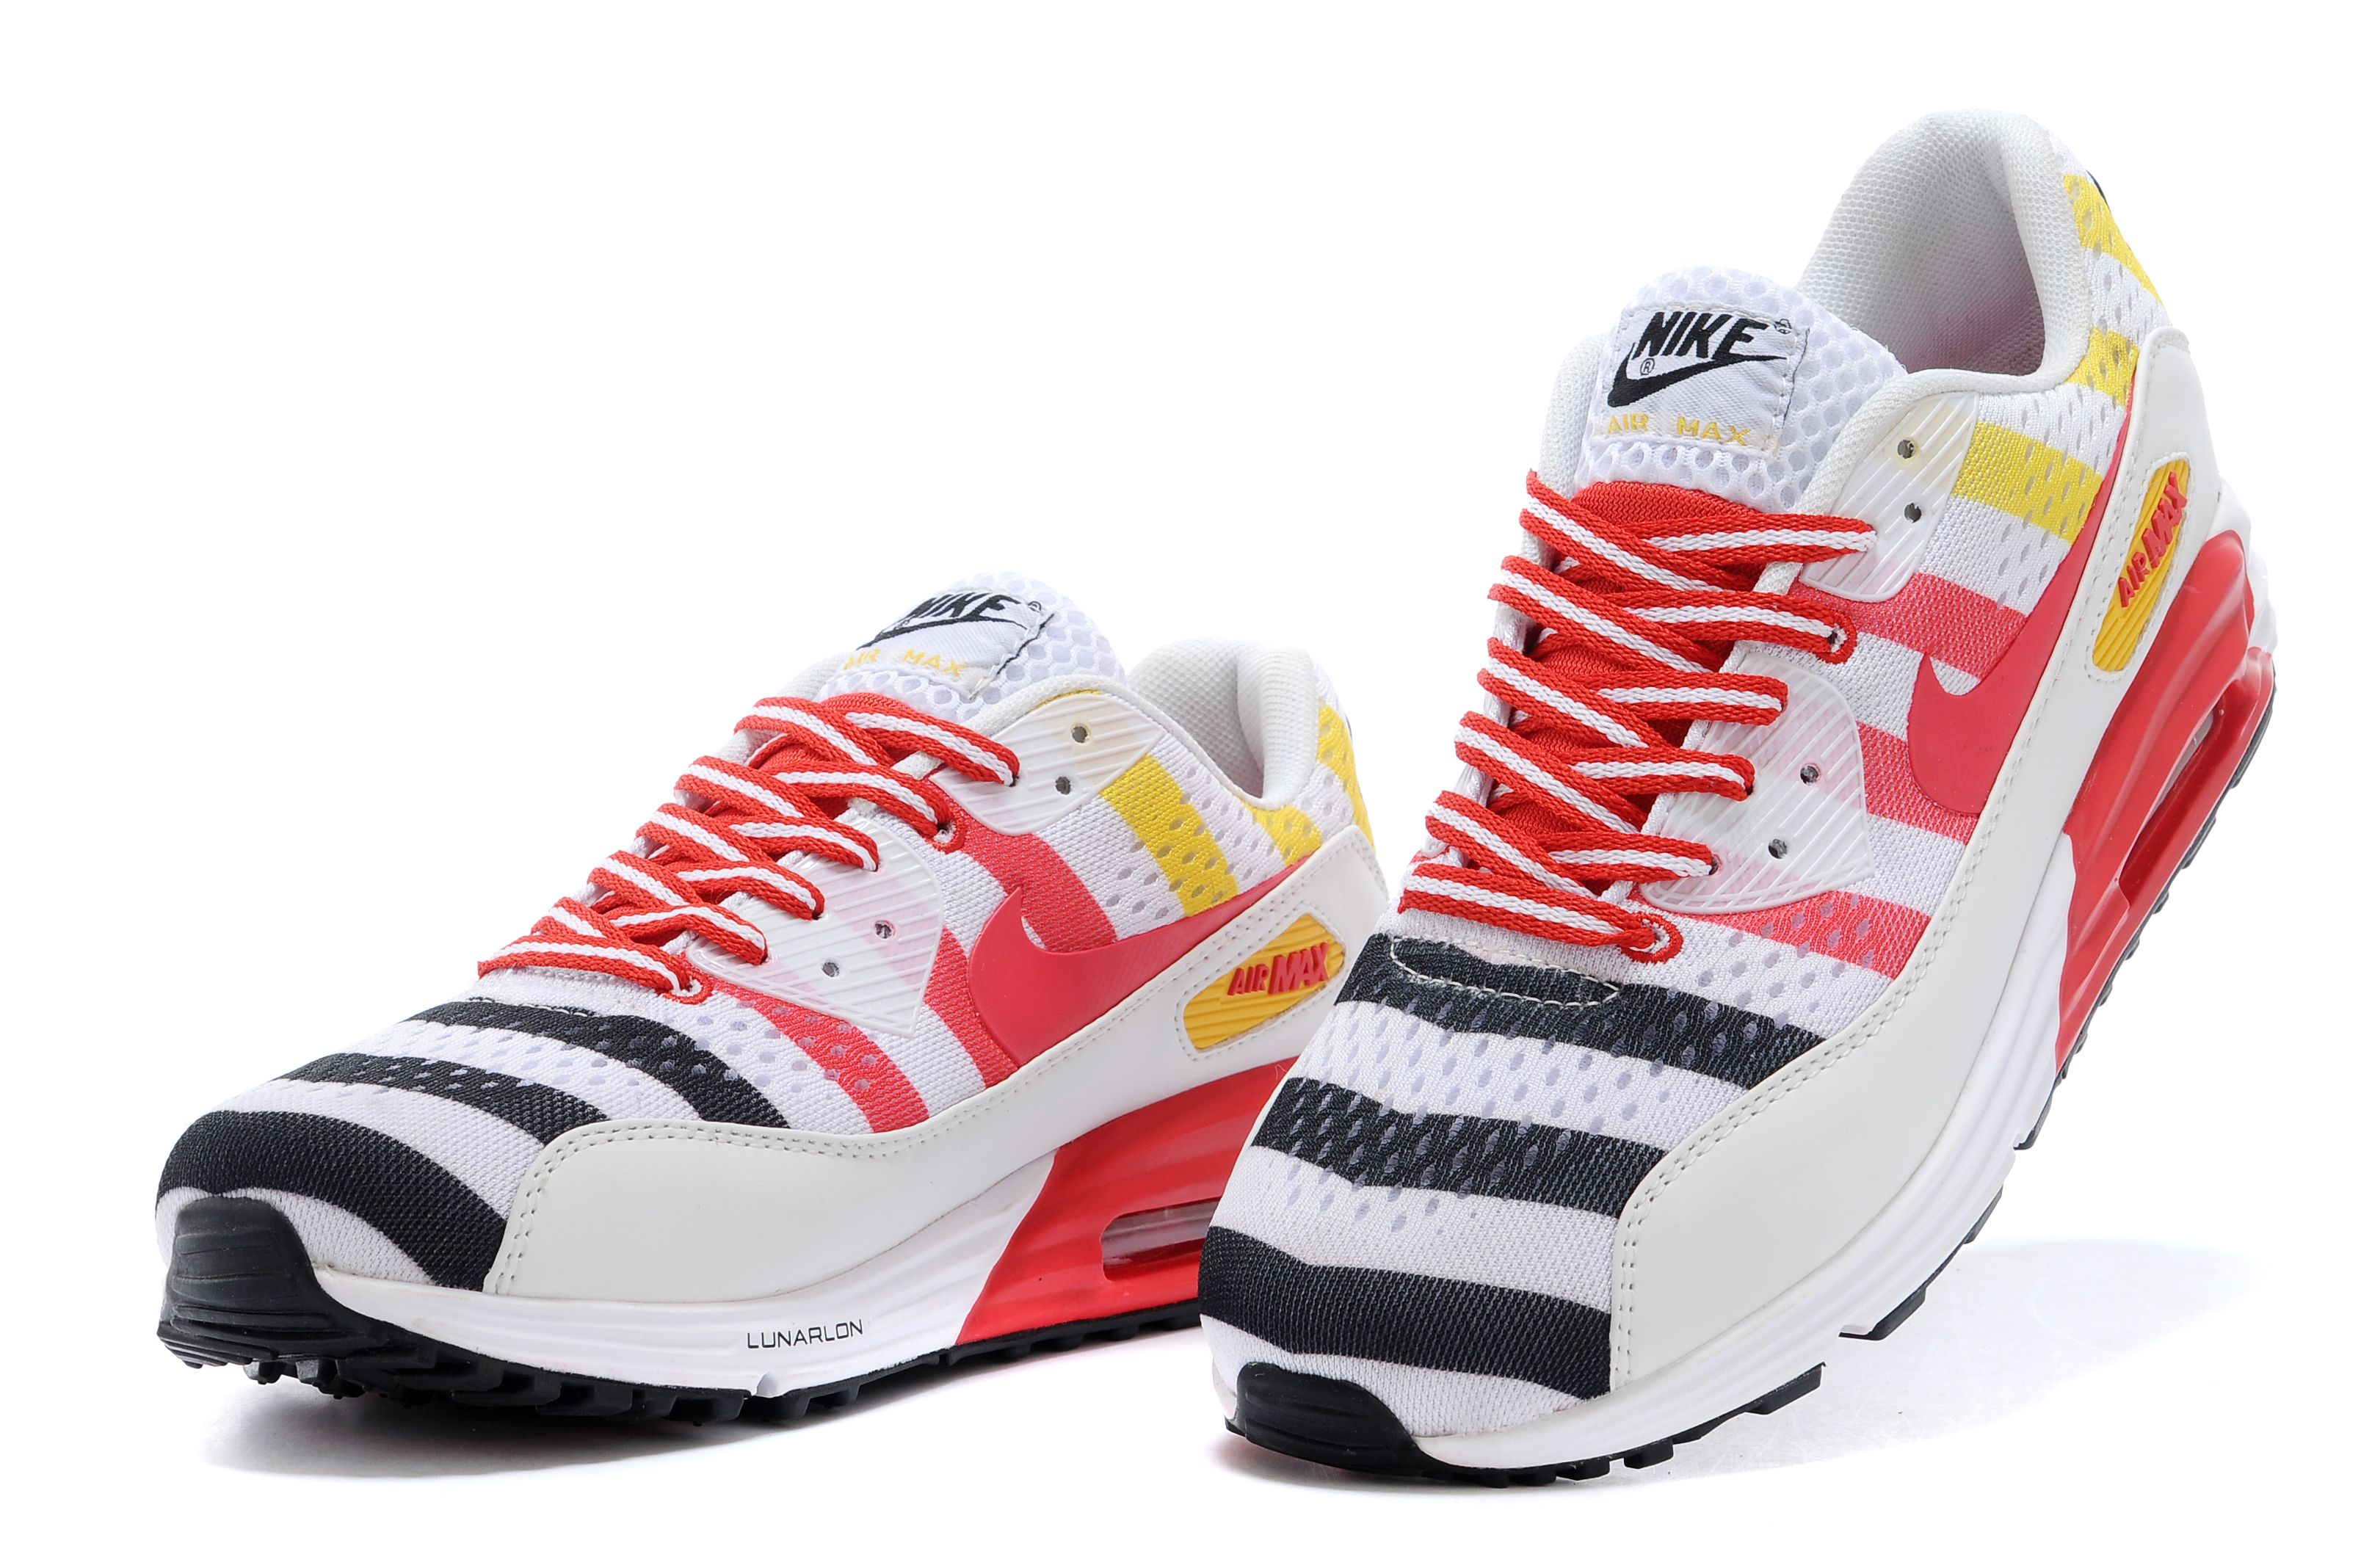 innovative design 2f0eb f6ee2 MENS AIR MAX 90 ENGINEERED MESH NATIONAL PACK